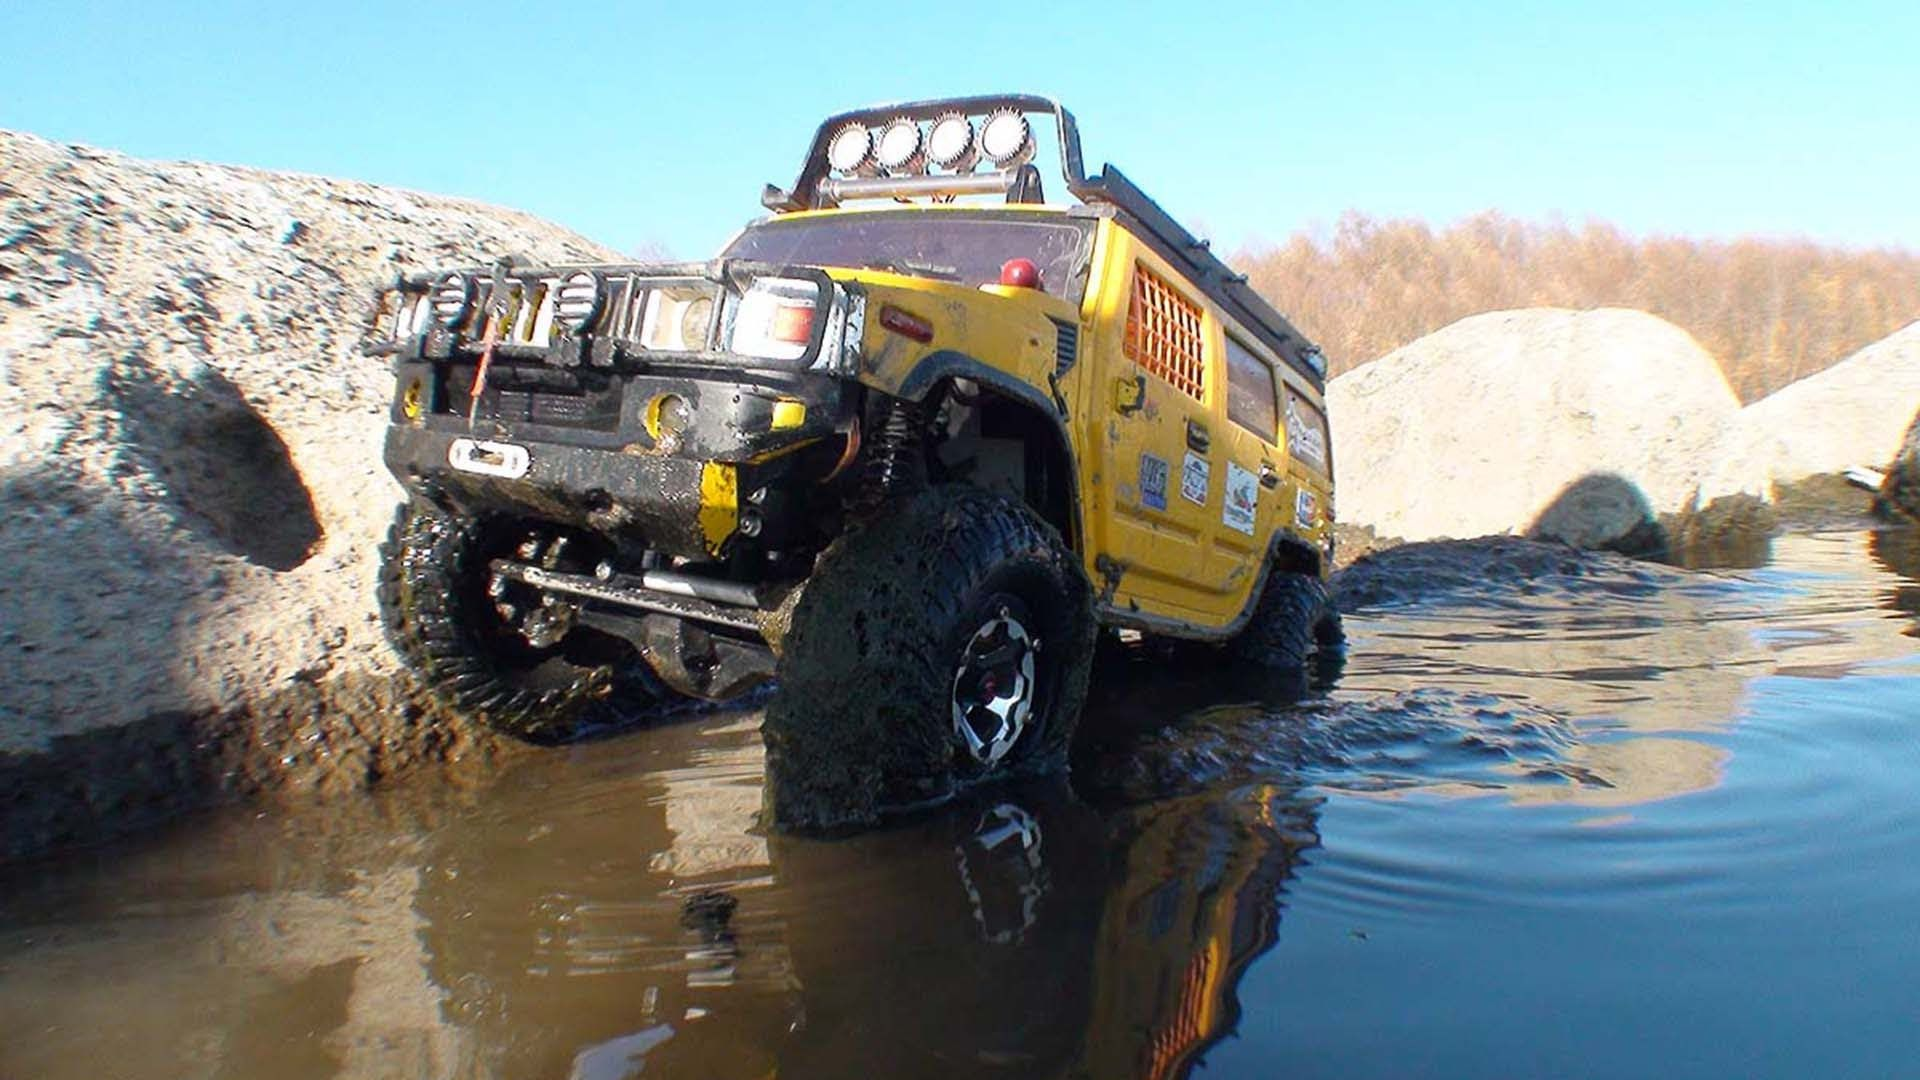 4x4 Hummer H2 Off Road Mud Rc Axial Wrait Hummer H2 Offroad Hummer